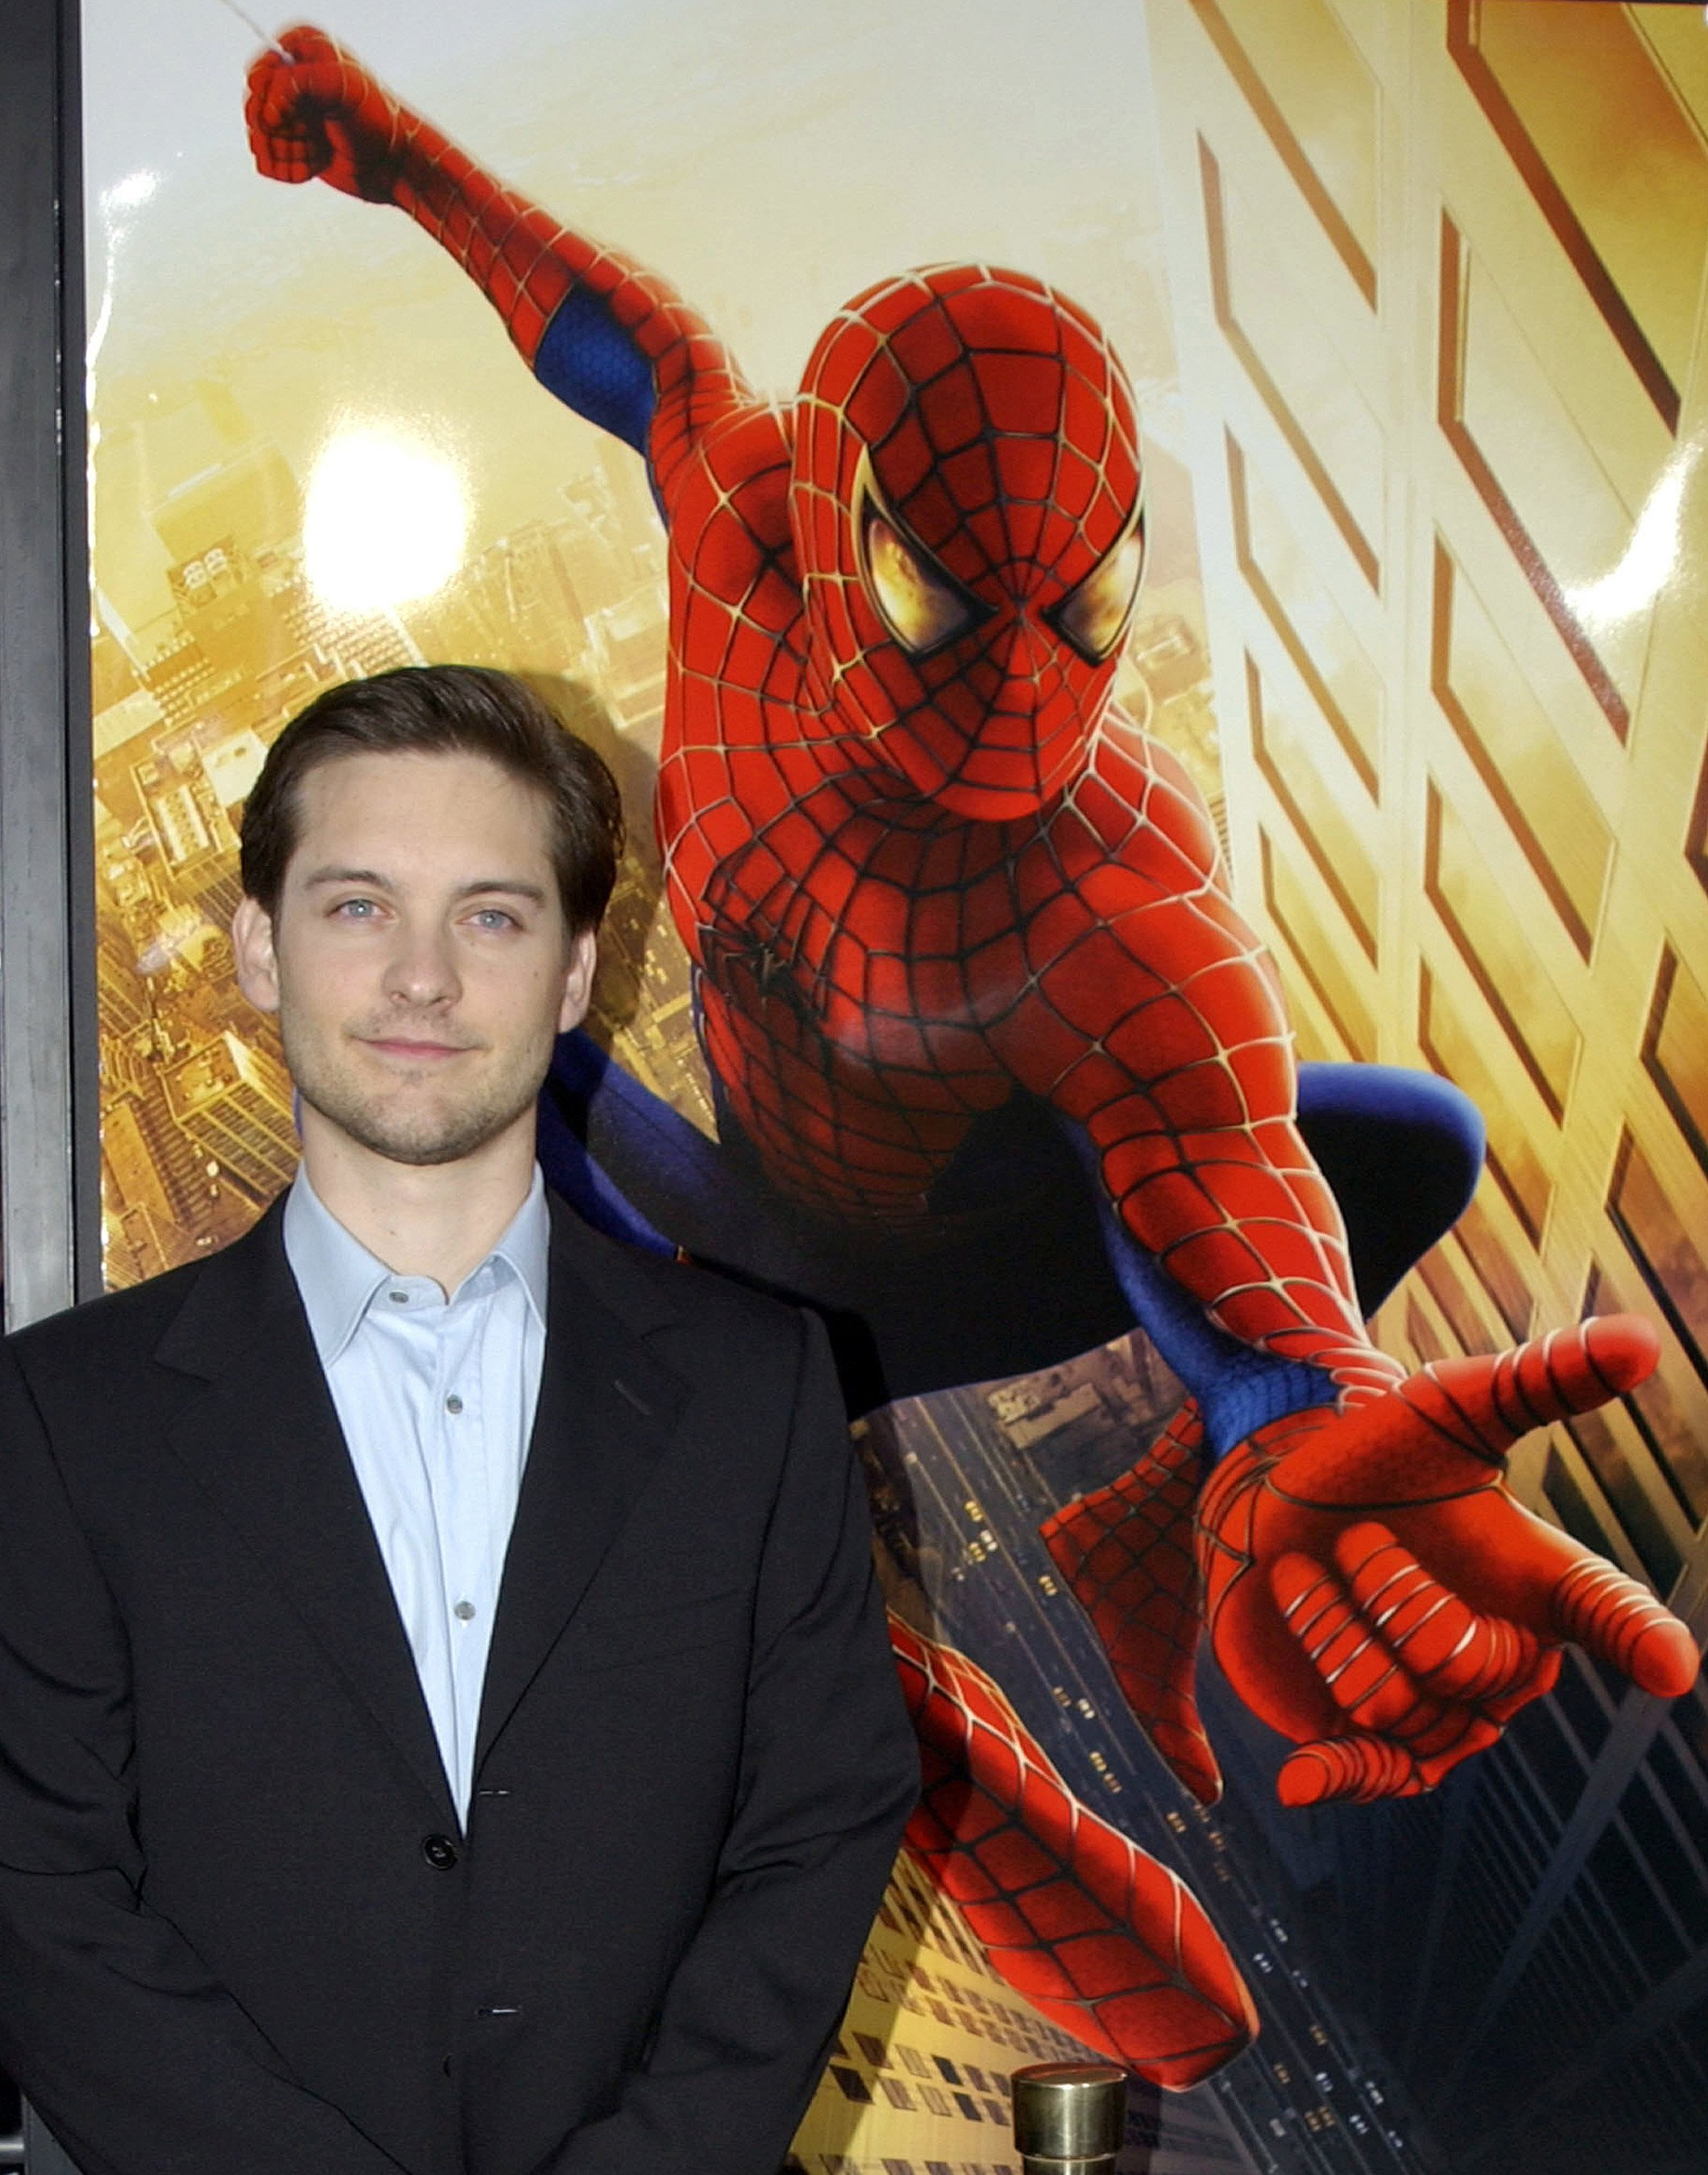 """Tobey Maguire at the premier of """"Spider-Man"""" at Mann Village in Westwood, California   Photo: Albert L. Ortega/WireImage via Getty Images"""